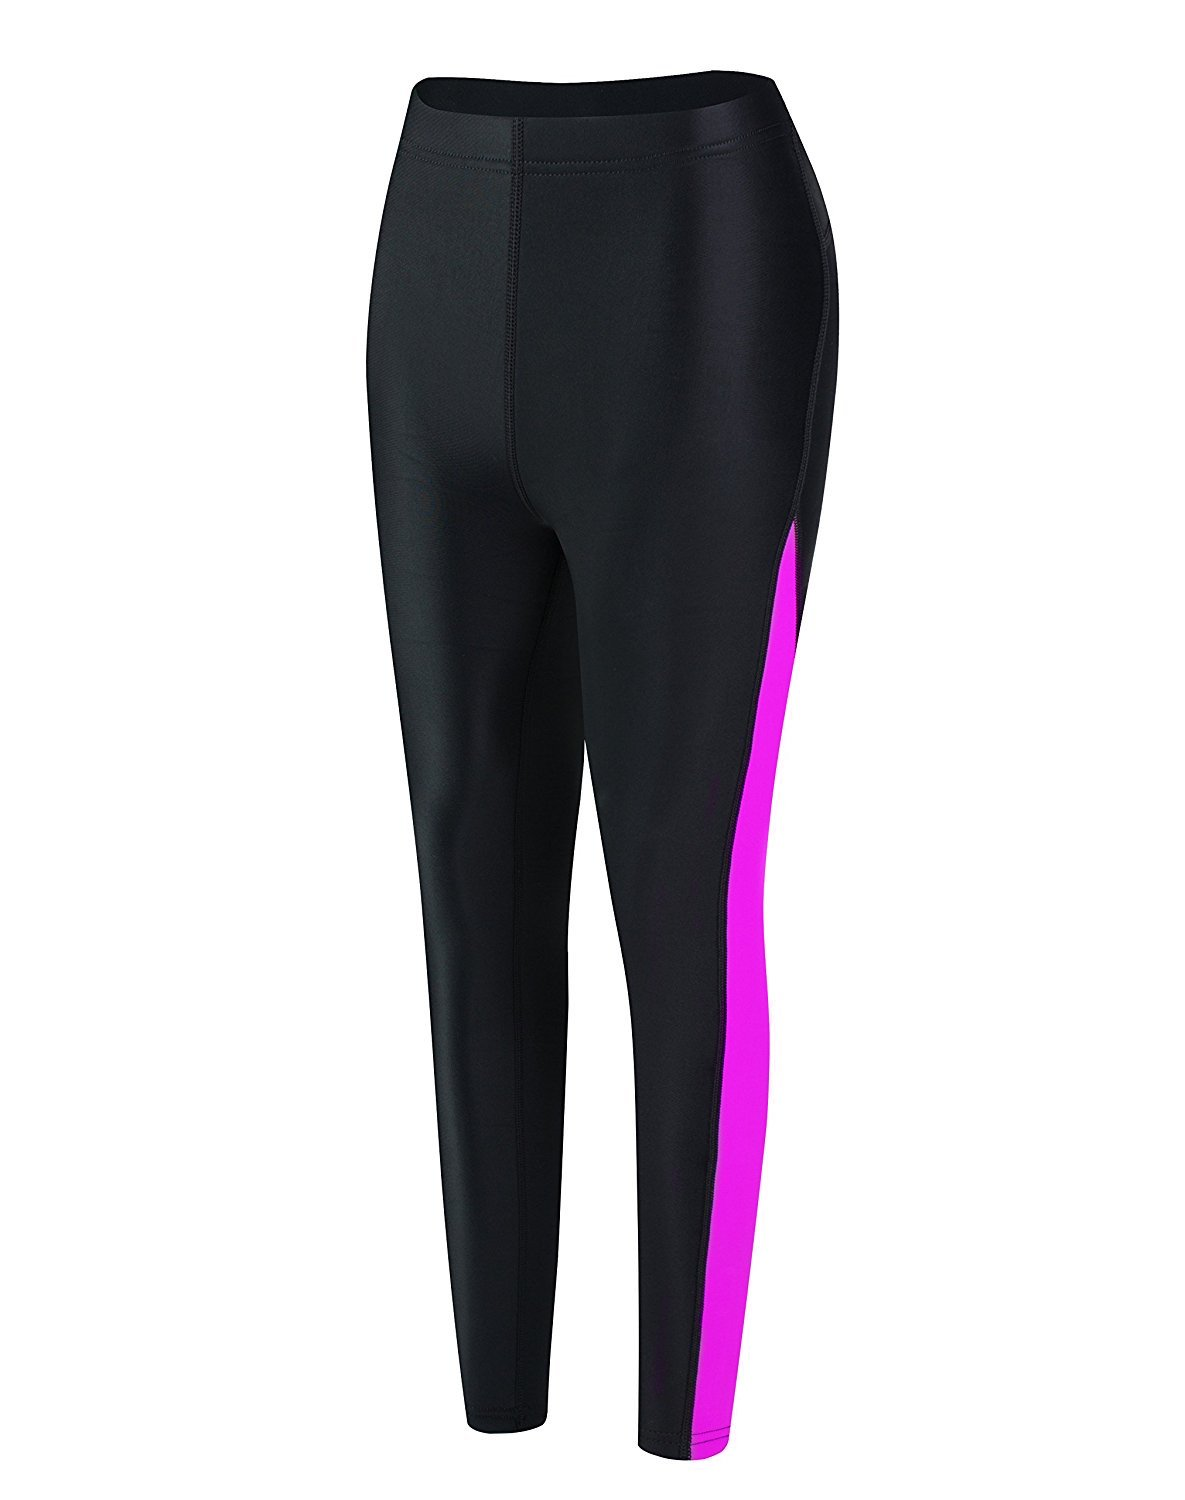 EYCE Dive & SAIL Women's 1.5mm Neoprene Wetsuit Pants Diving Snorkeling Scuba Surf Canoe Pants (Purple, Small) by EYCE